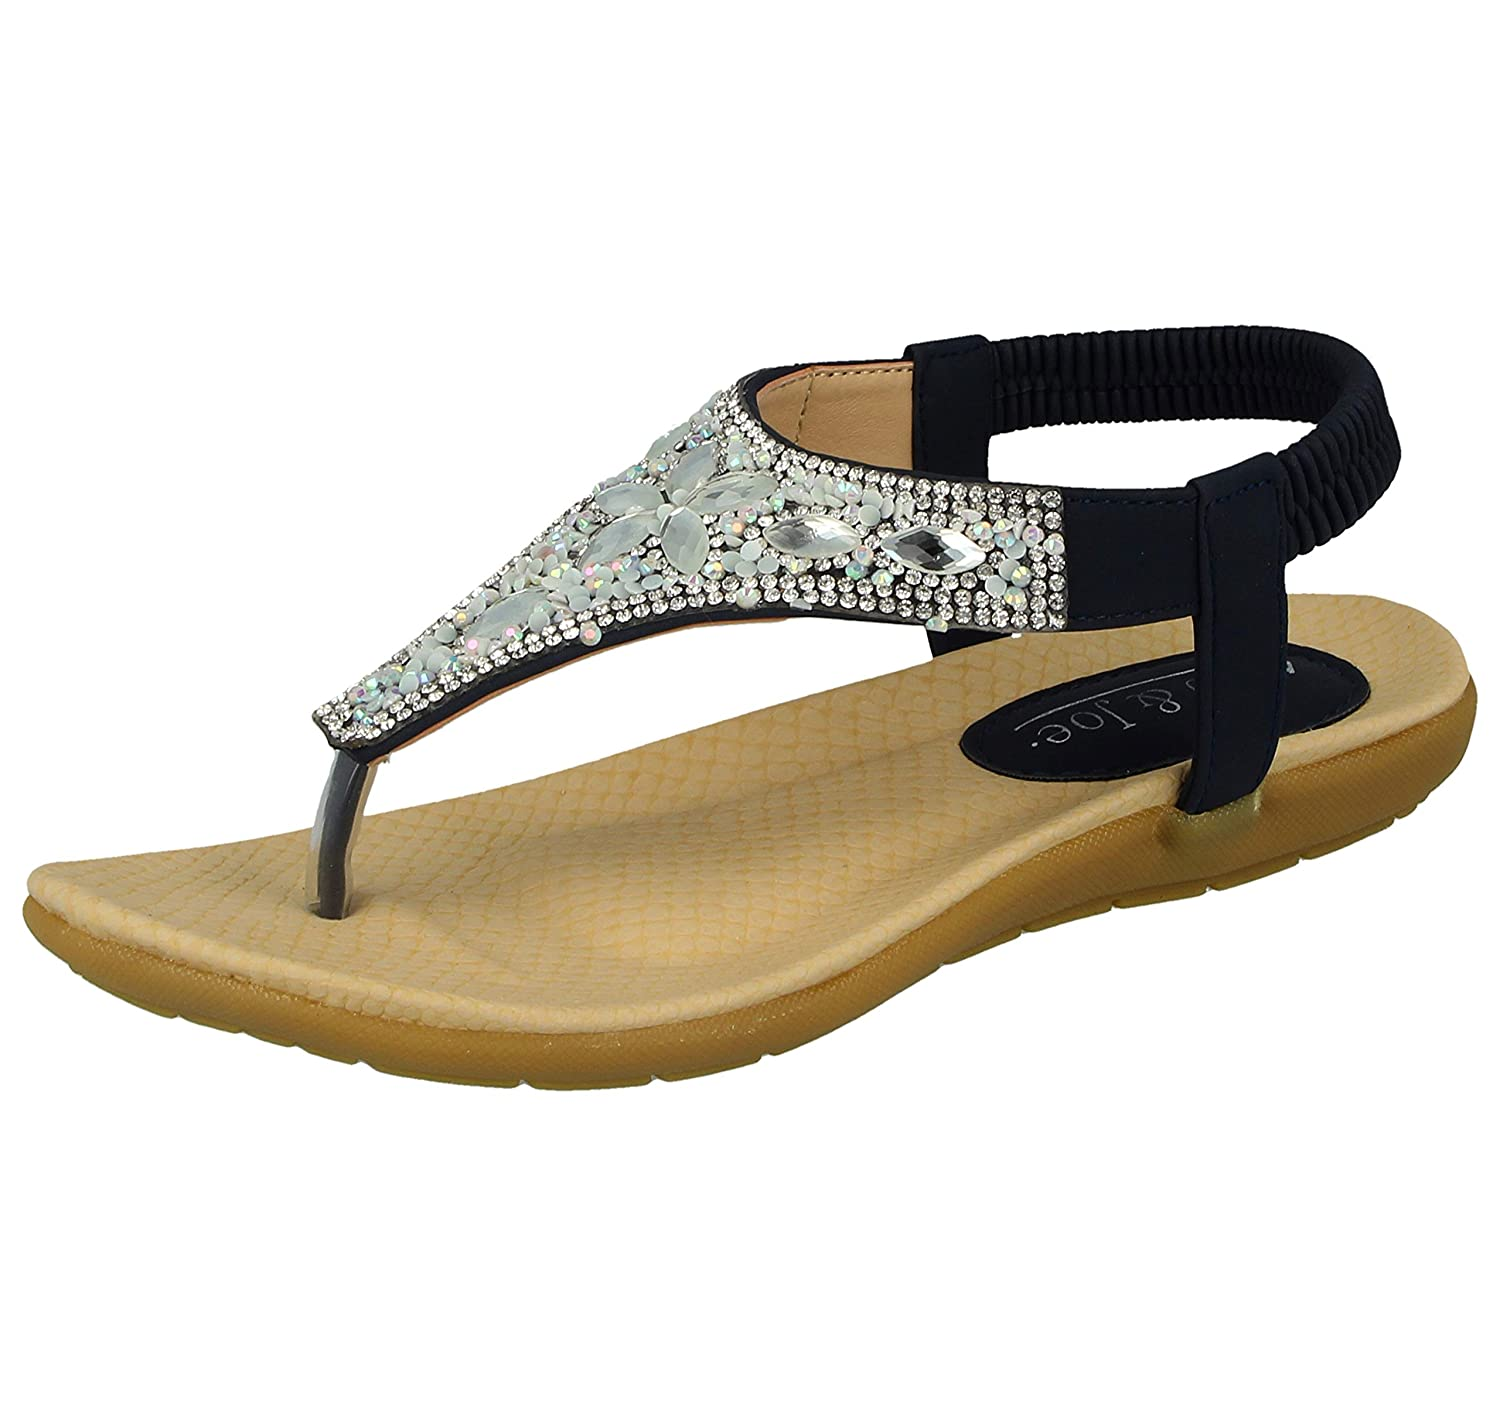 cbef0f9f7da54 Jo & Joe Womens Faux Leather Open Toe Post Sling Back T-Bar Dimante  Encrusted Flip Flop Sandals UK 3-8